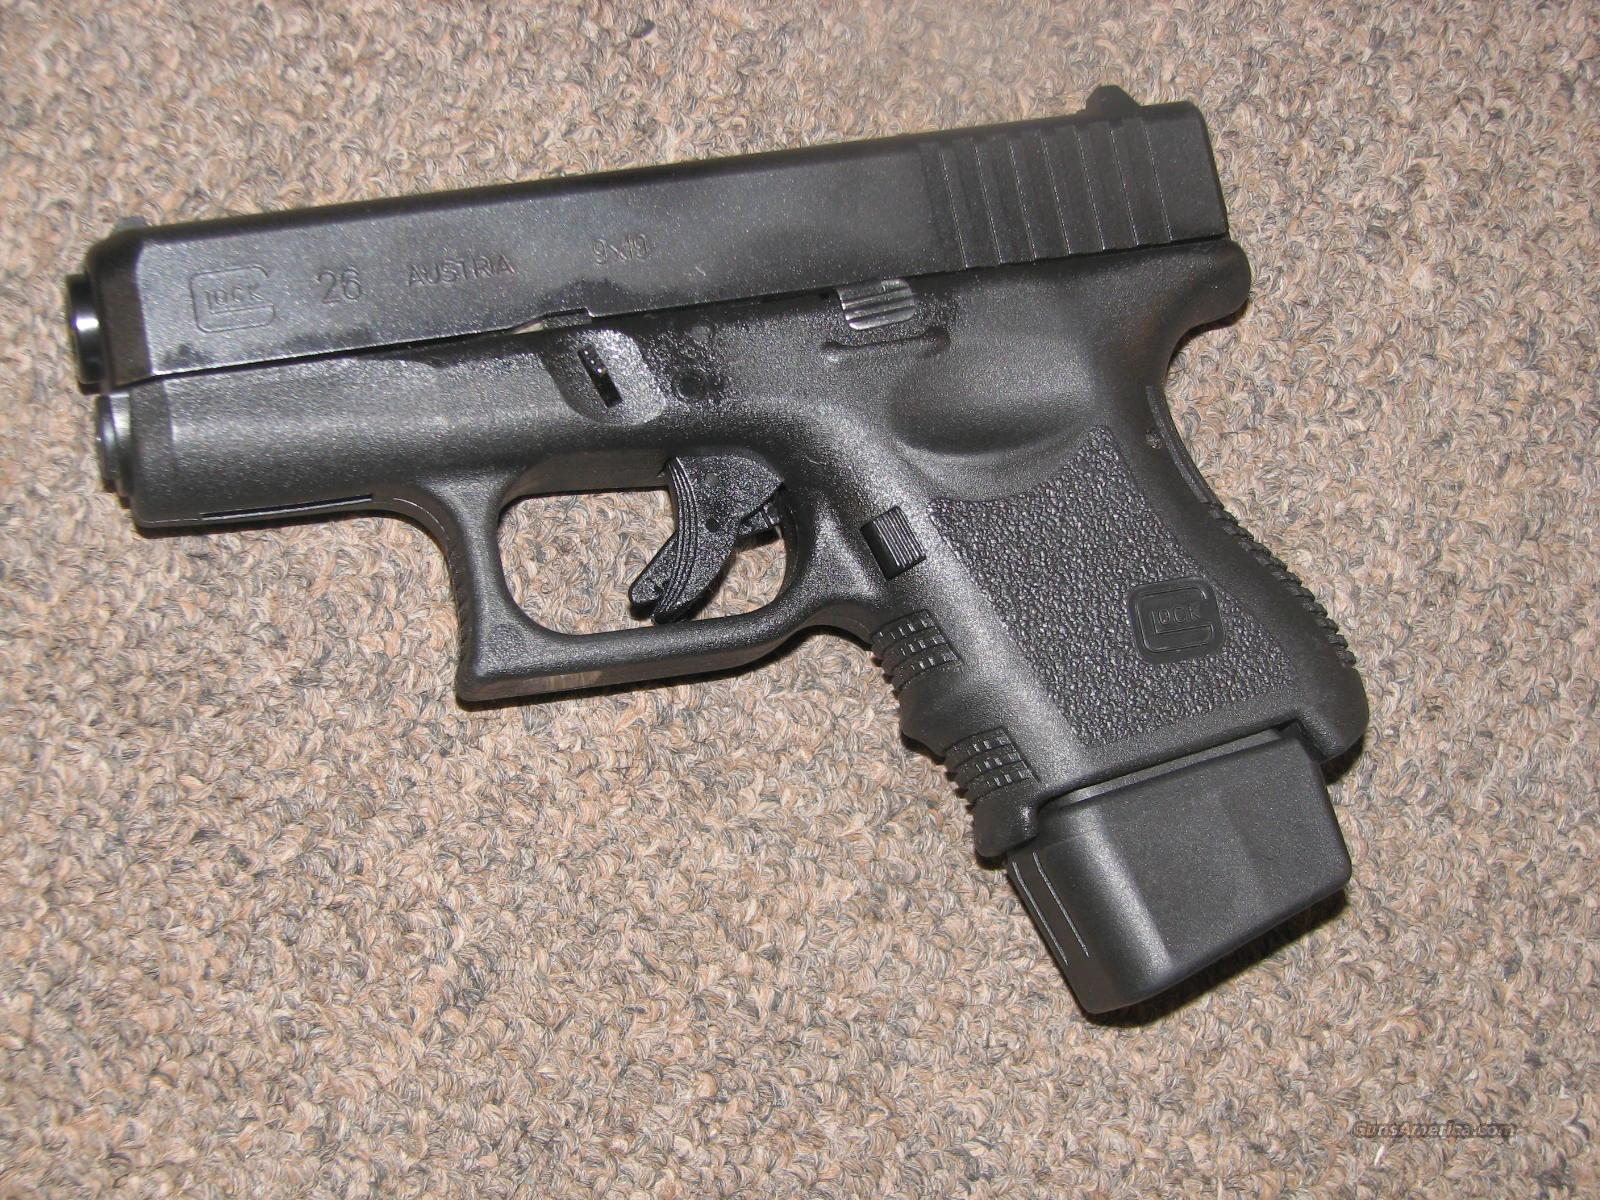 GLOCK 26 9mm w/ EXTENDED MAG for sale  GLOCK 26 9mm w/...